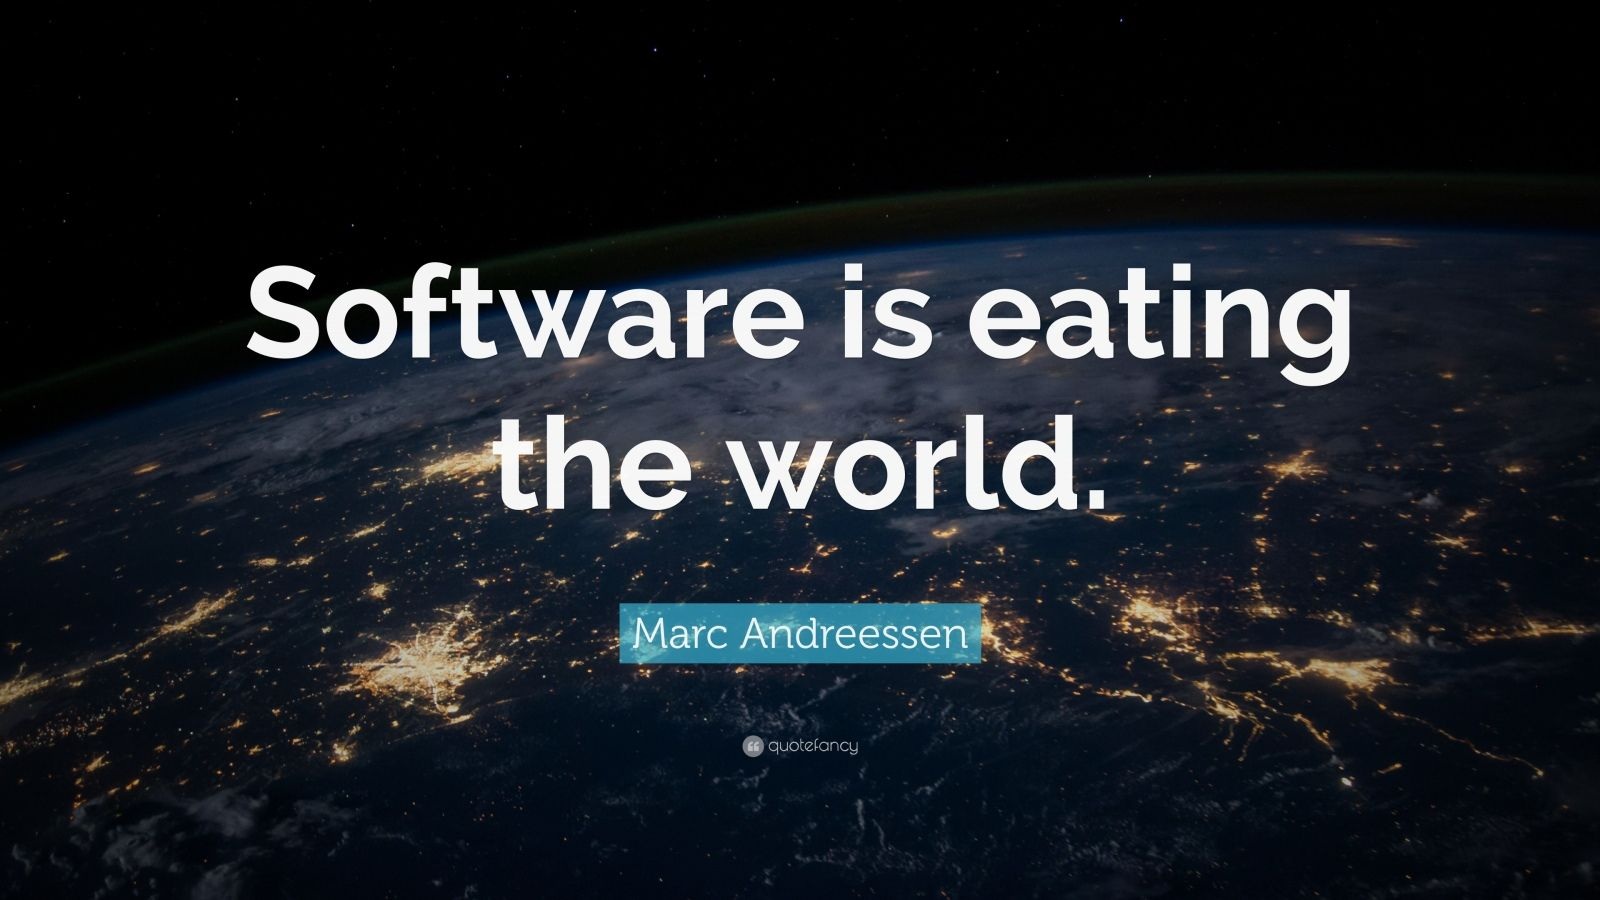 Programmer Quotes Wallpaper Hd Quotes About World 40 Wallpapers Quotefancy